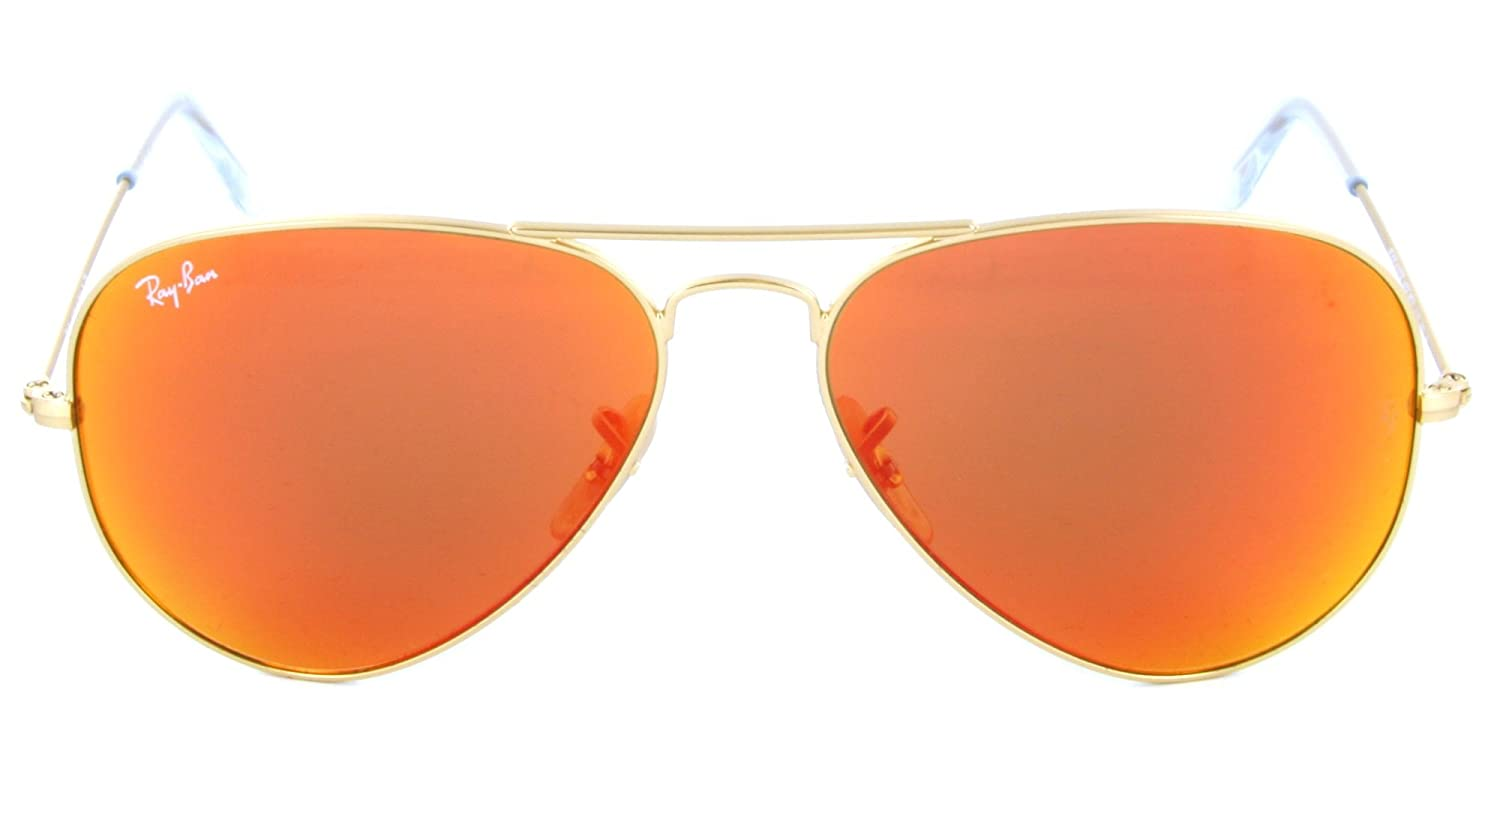 161e2c6457a Amazon.com  Ray Ban 3025 Aviator RB 3025 112 69 58mm Matte Gold Frame w   Brown Mirror Orange  Shoes